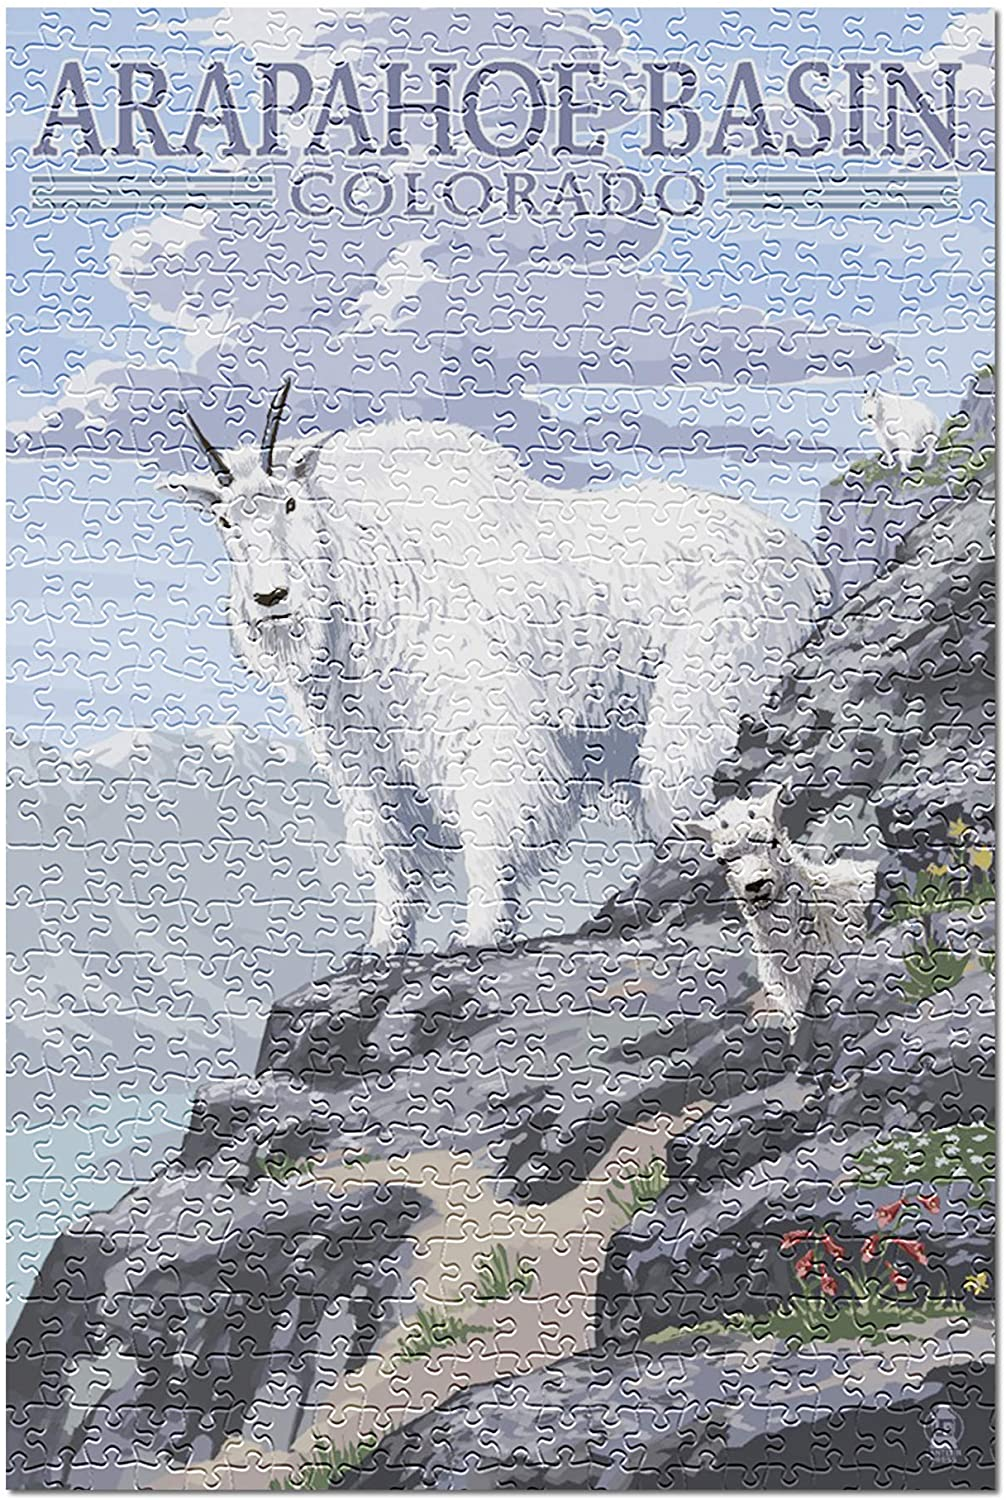 Arapahoe Basin, Colorado - Mountain Goat and Kid 87972 (Premium 500 Piece Jigsaw Puzzle for Adults, 13x19, Made in USA!)